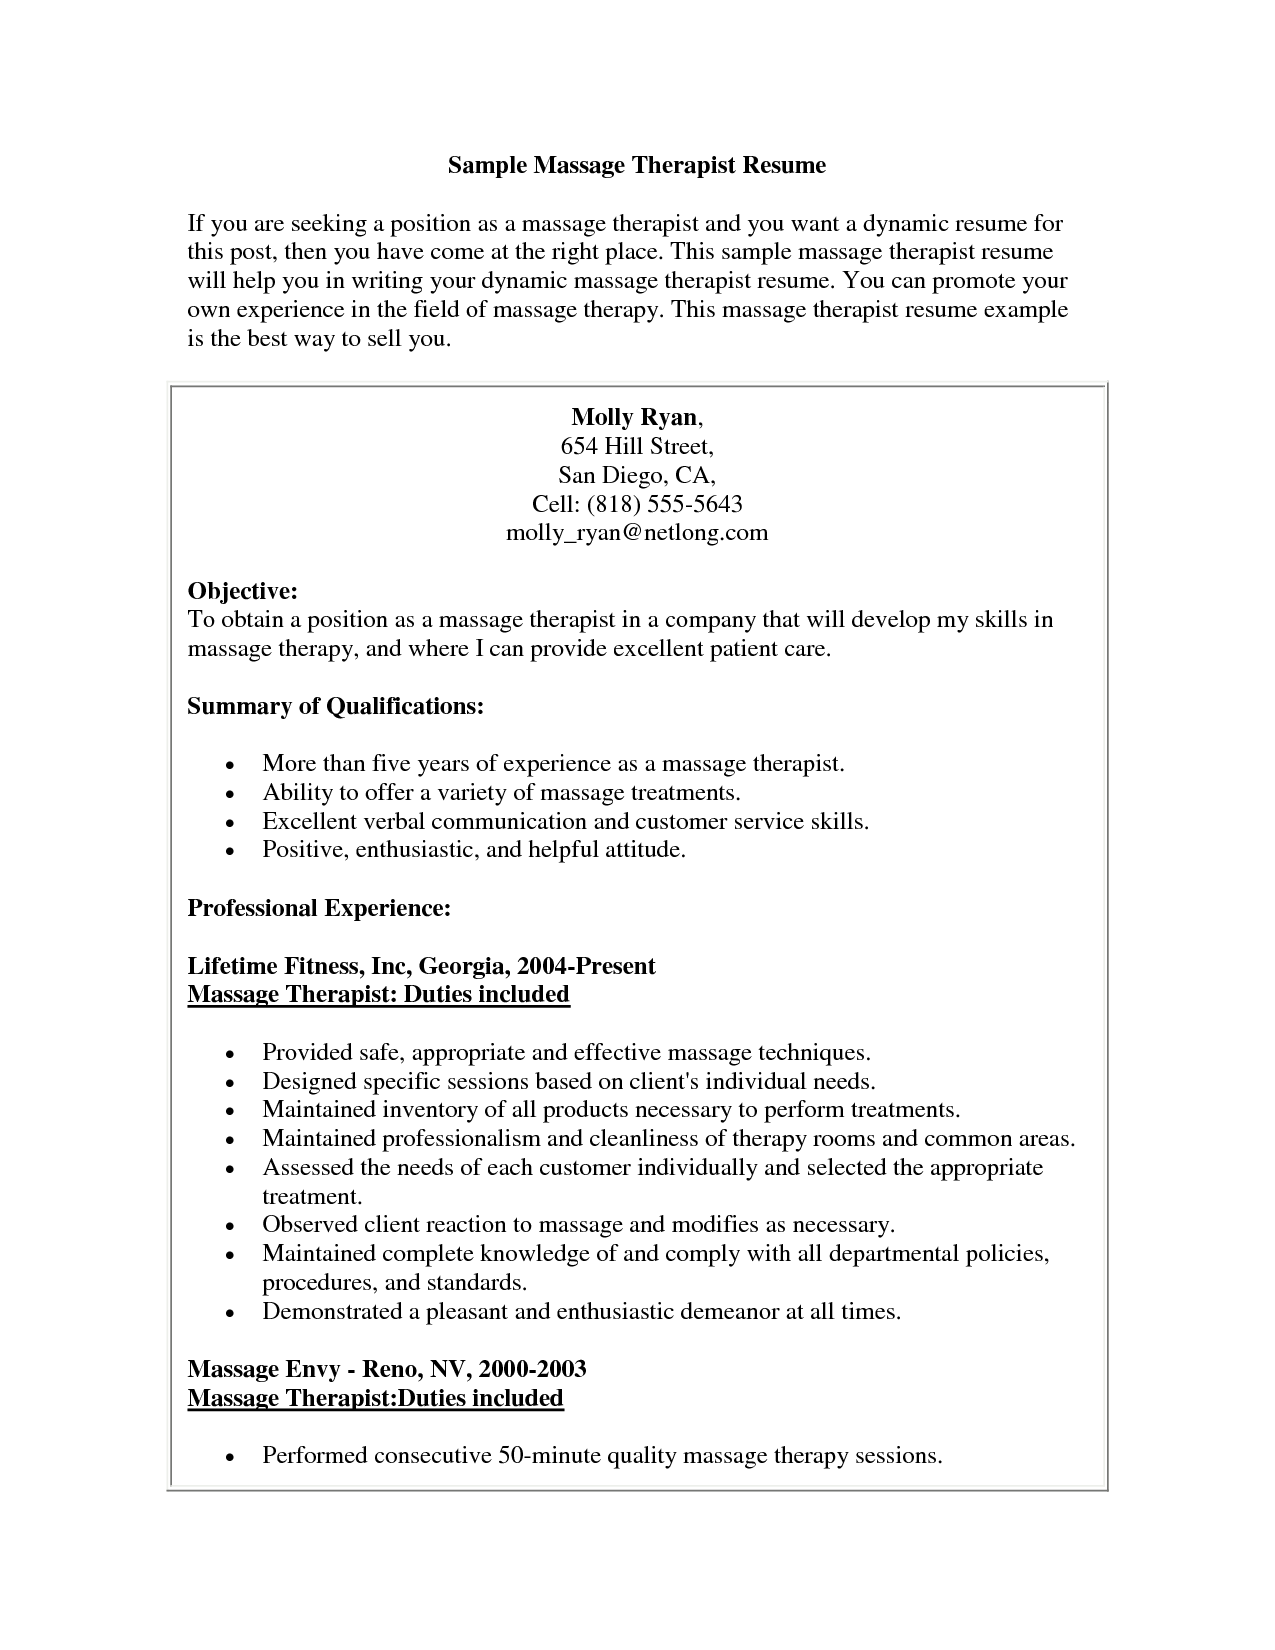 Resume Bullet Points Examples Massage Therapist Resume Sample Massage Therapist Resume Sample